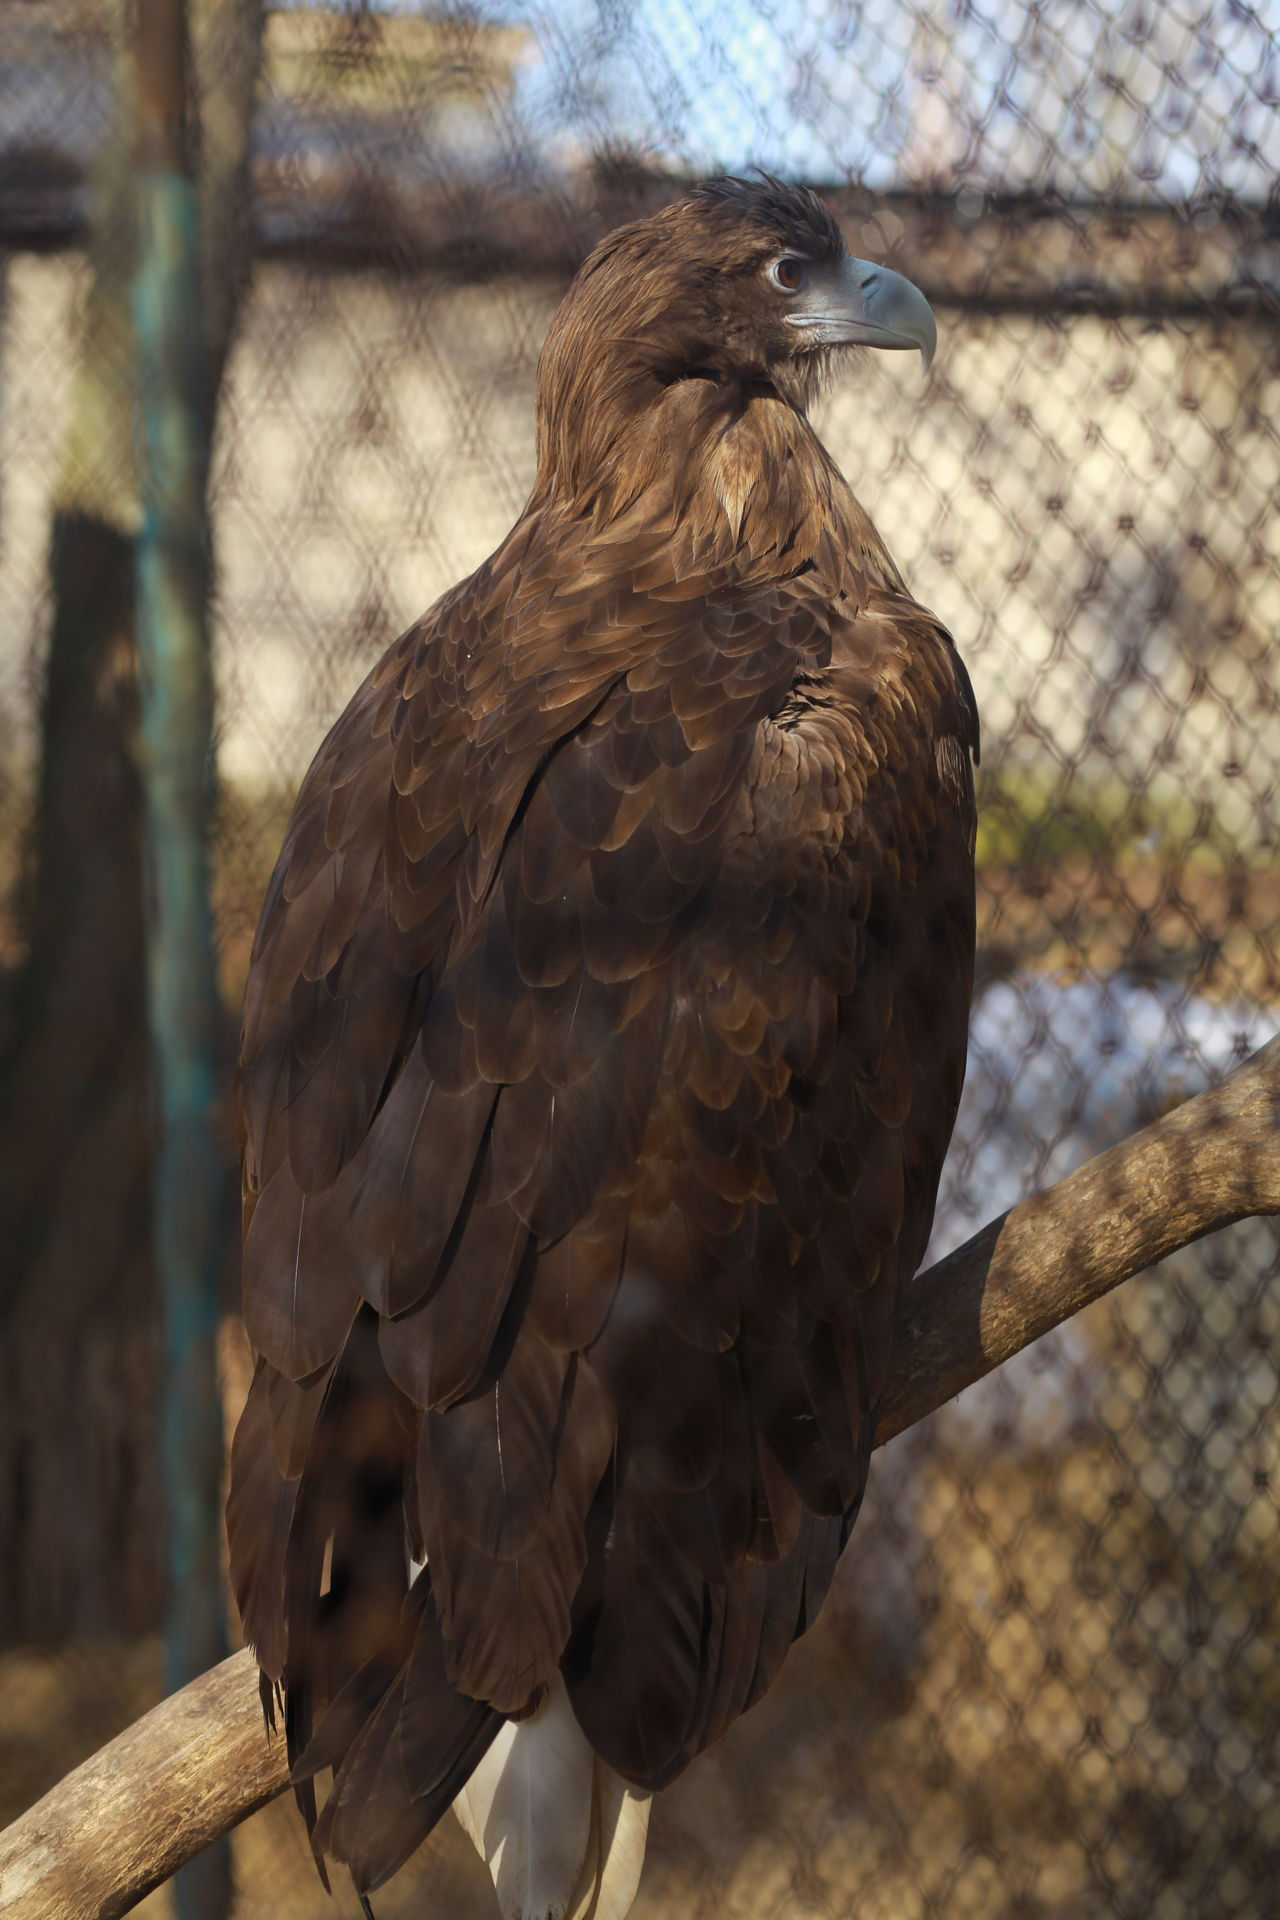 Animal Themes Animal Wildlife Animals In The Wild Bald Eagle Bird Bird Of Prey Close-up Day Eagle Eagle Eagle - Bird Hawk Nature No People One Animal Outdoors Perching